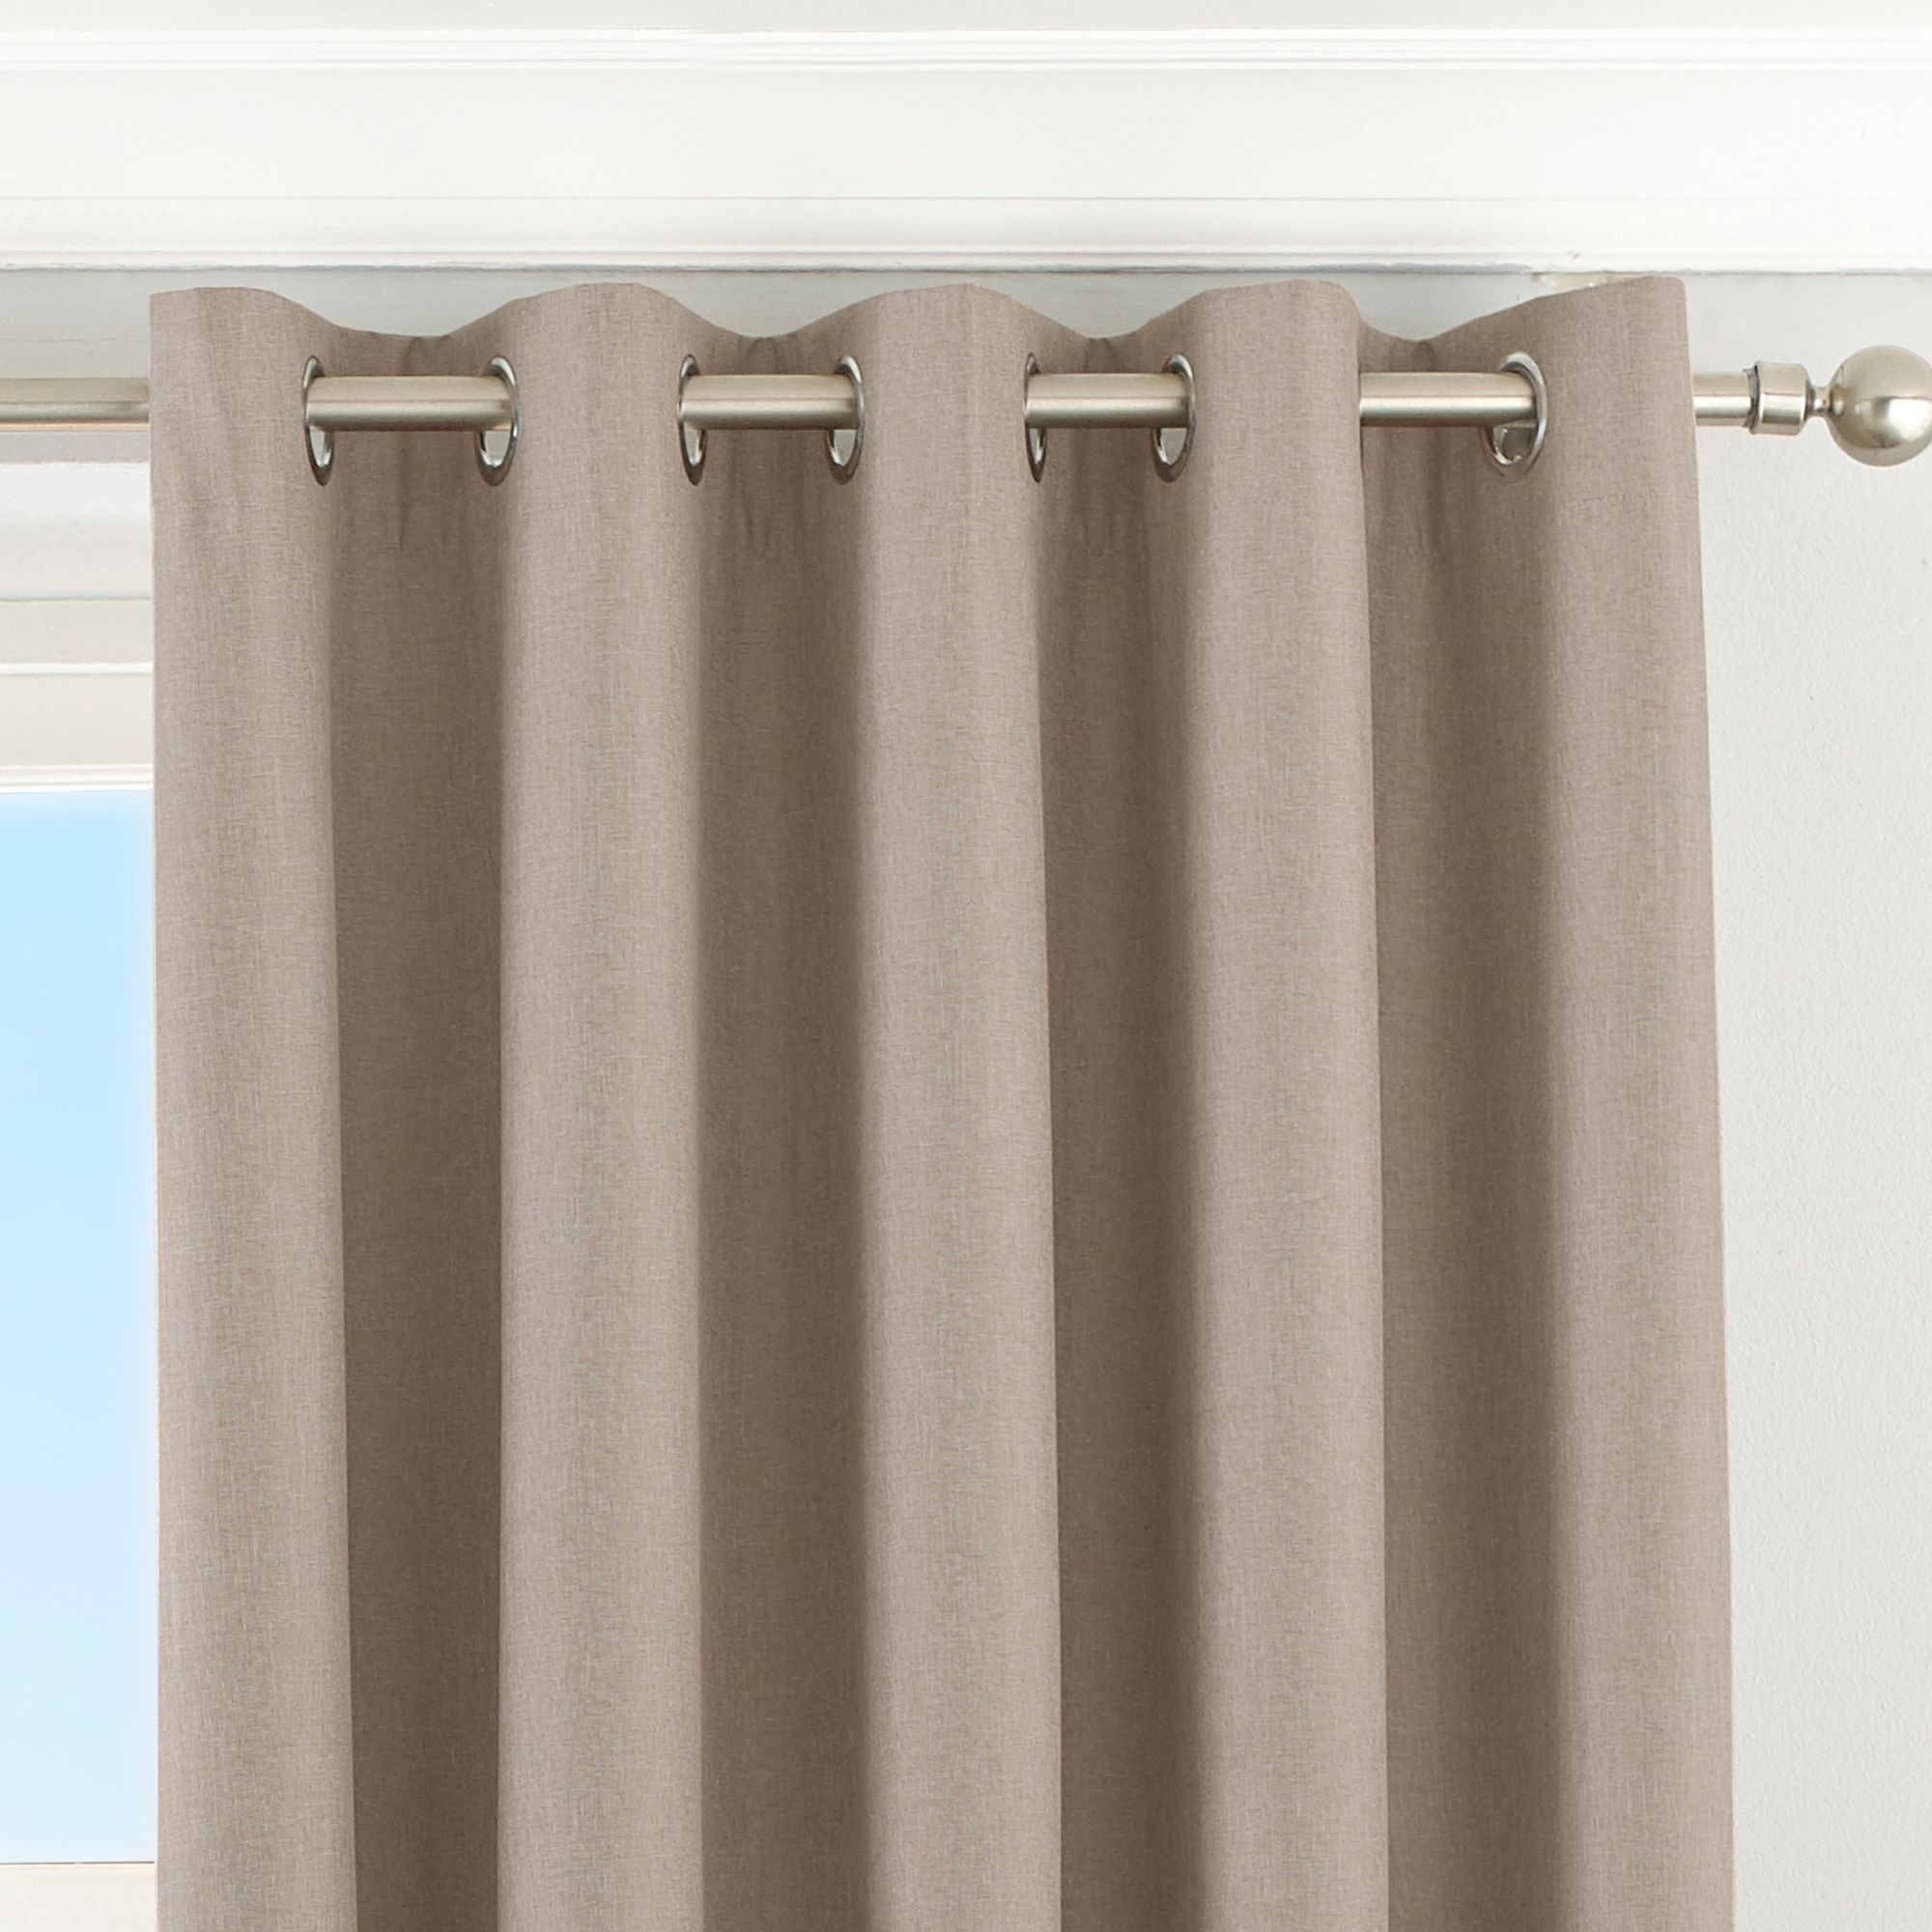 Eclipse Blackout Eyelet Curtains in Natural